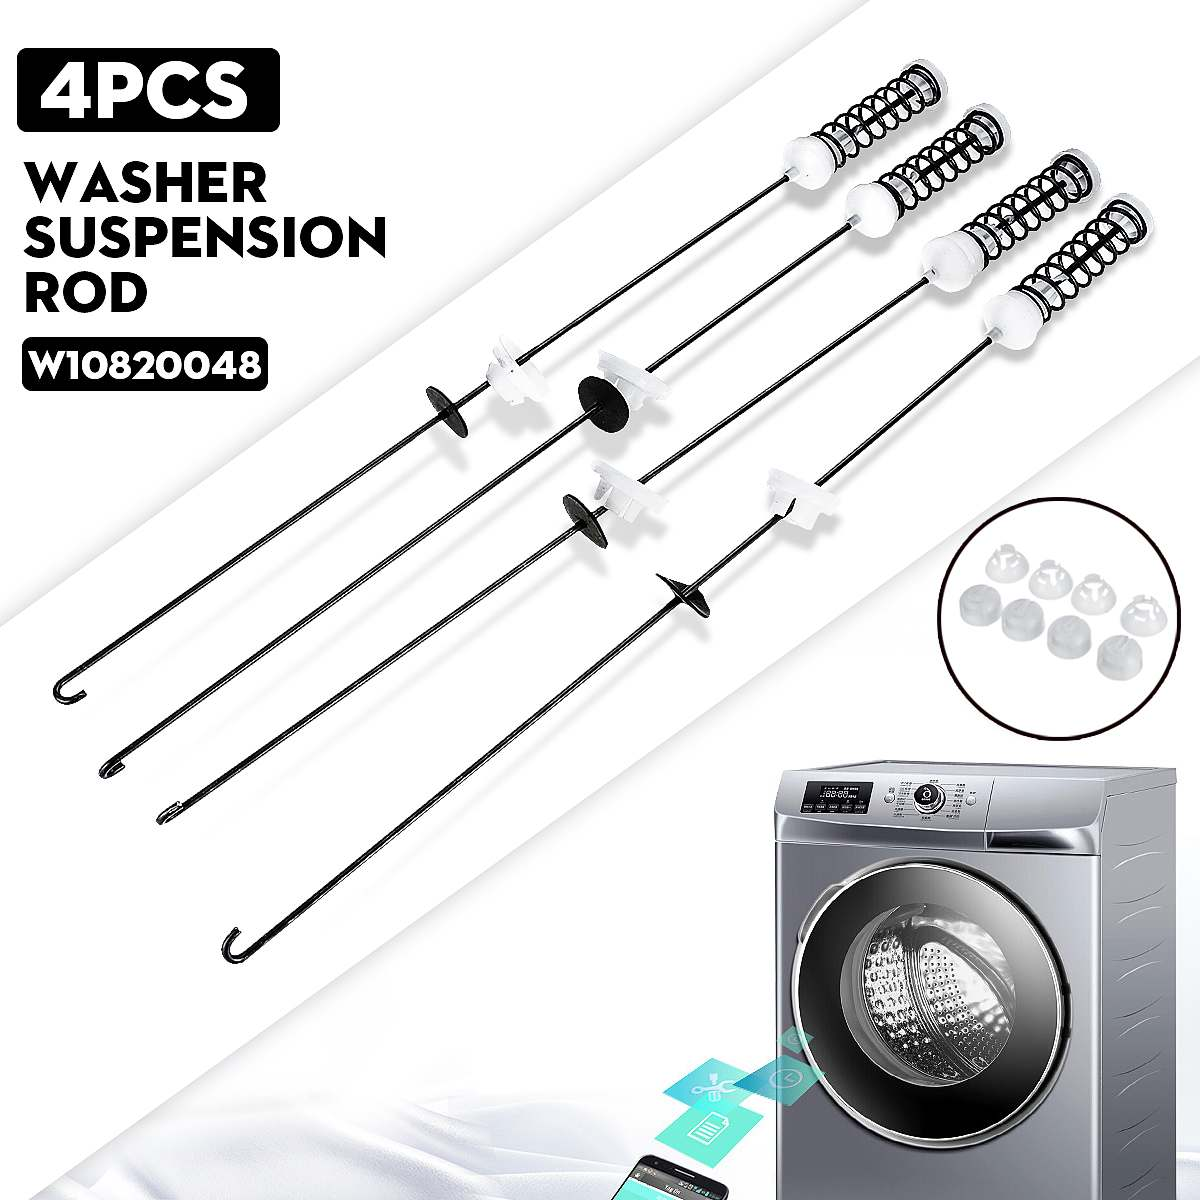 4Pcs Washing Machine Suspension Rods Tools Kit AP5971398 PS11703290 W10780048 For Whirlpool